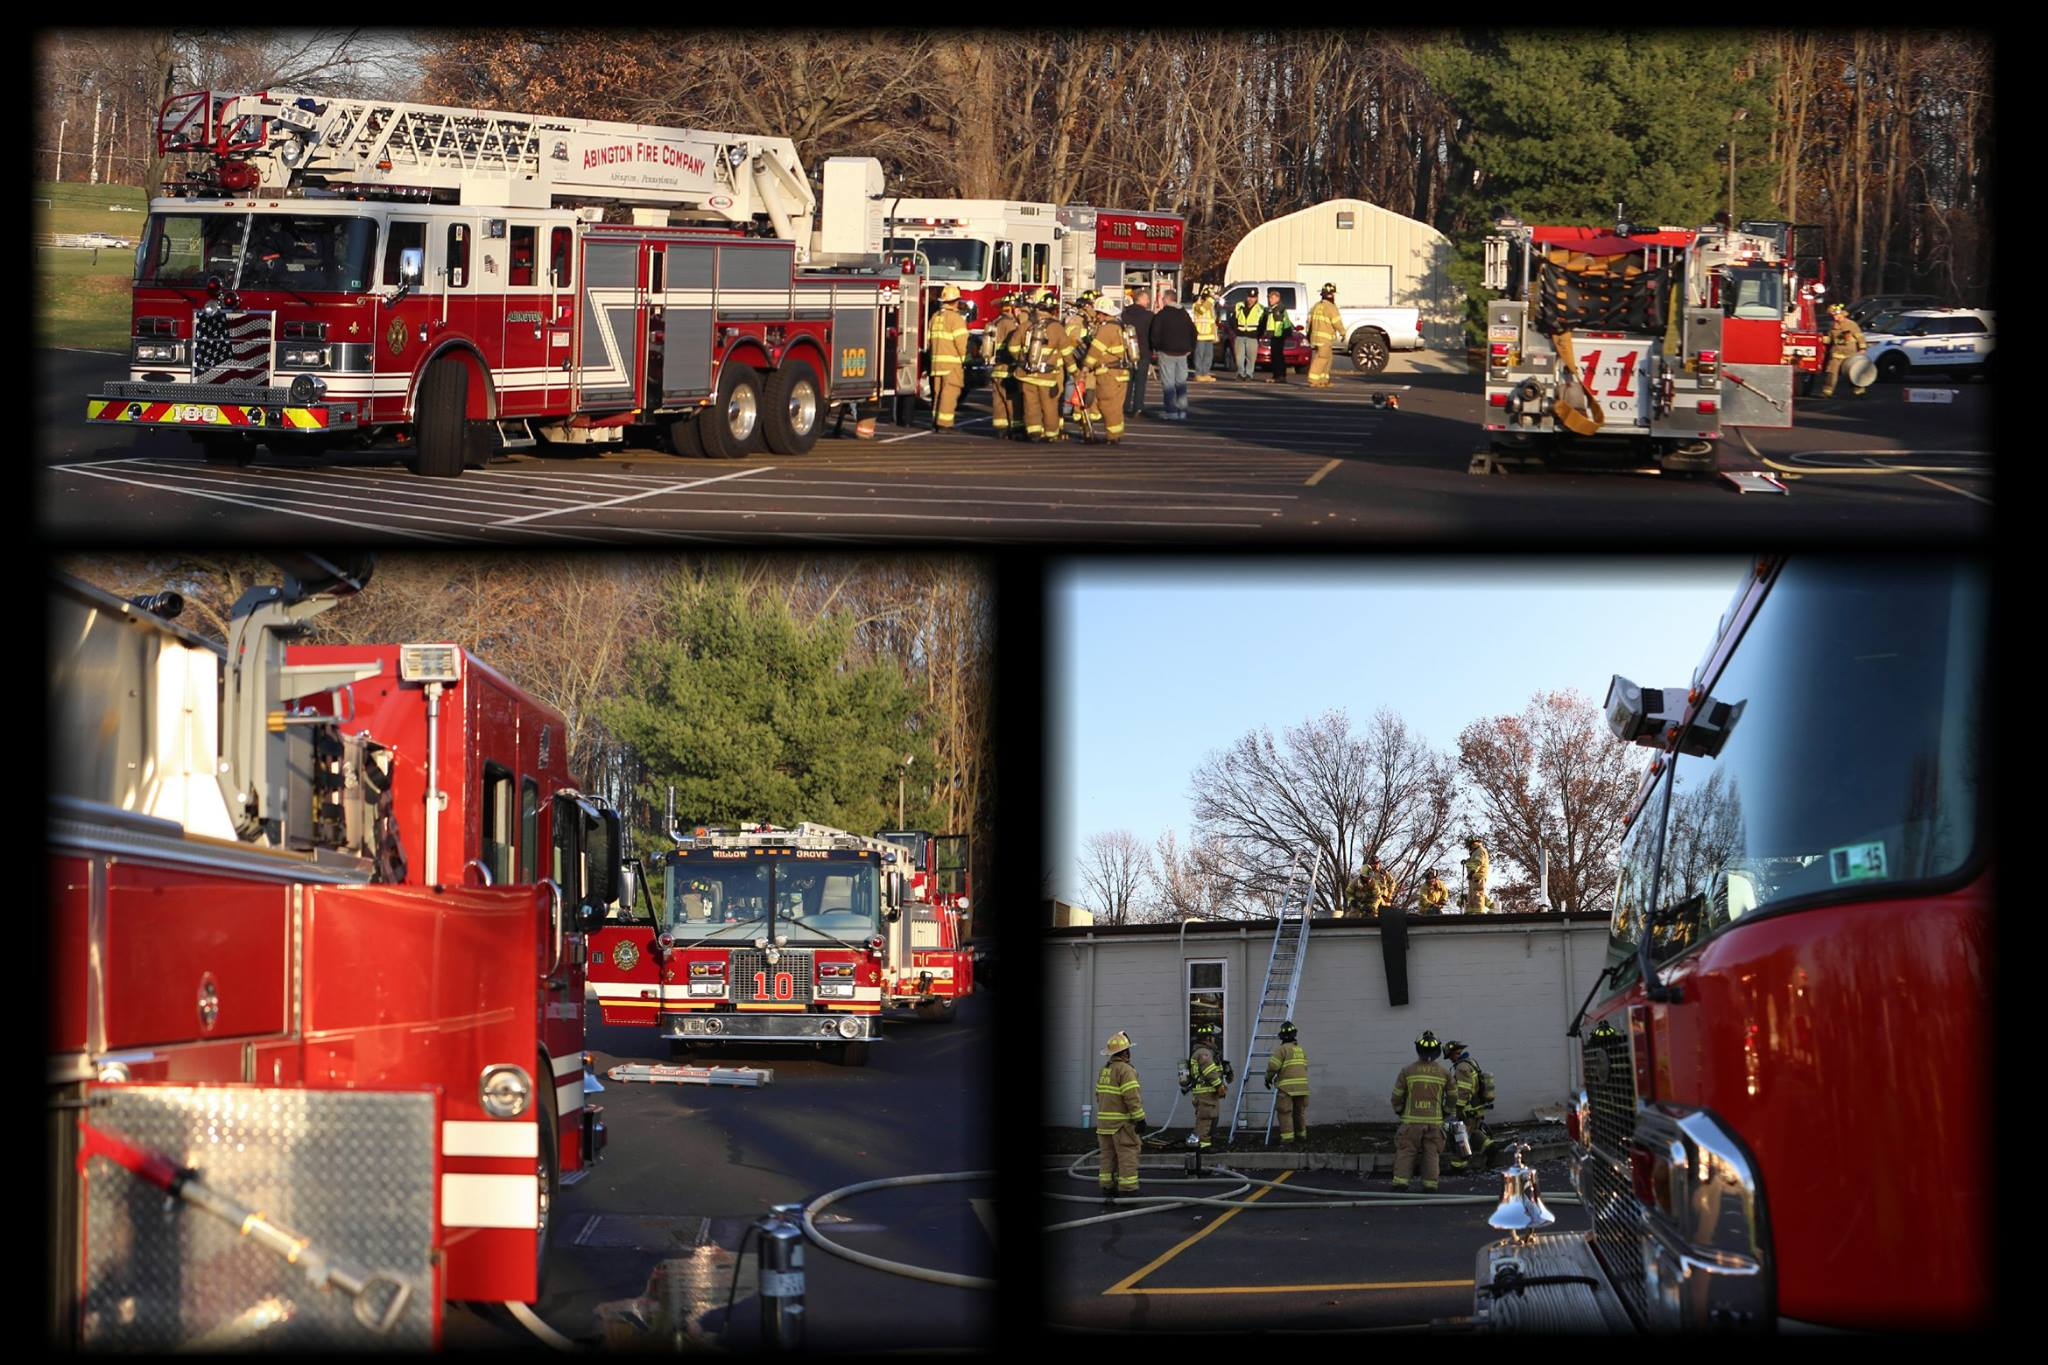 Building Fire 11-19-14